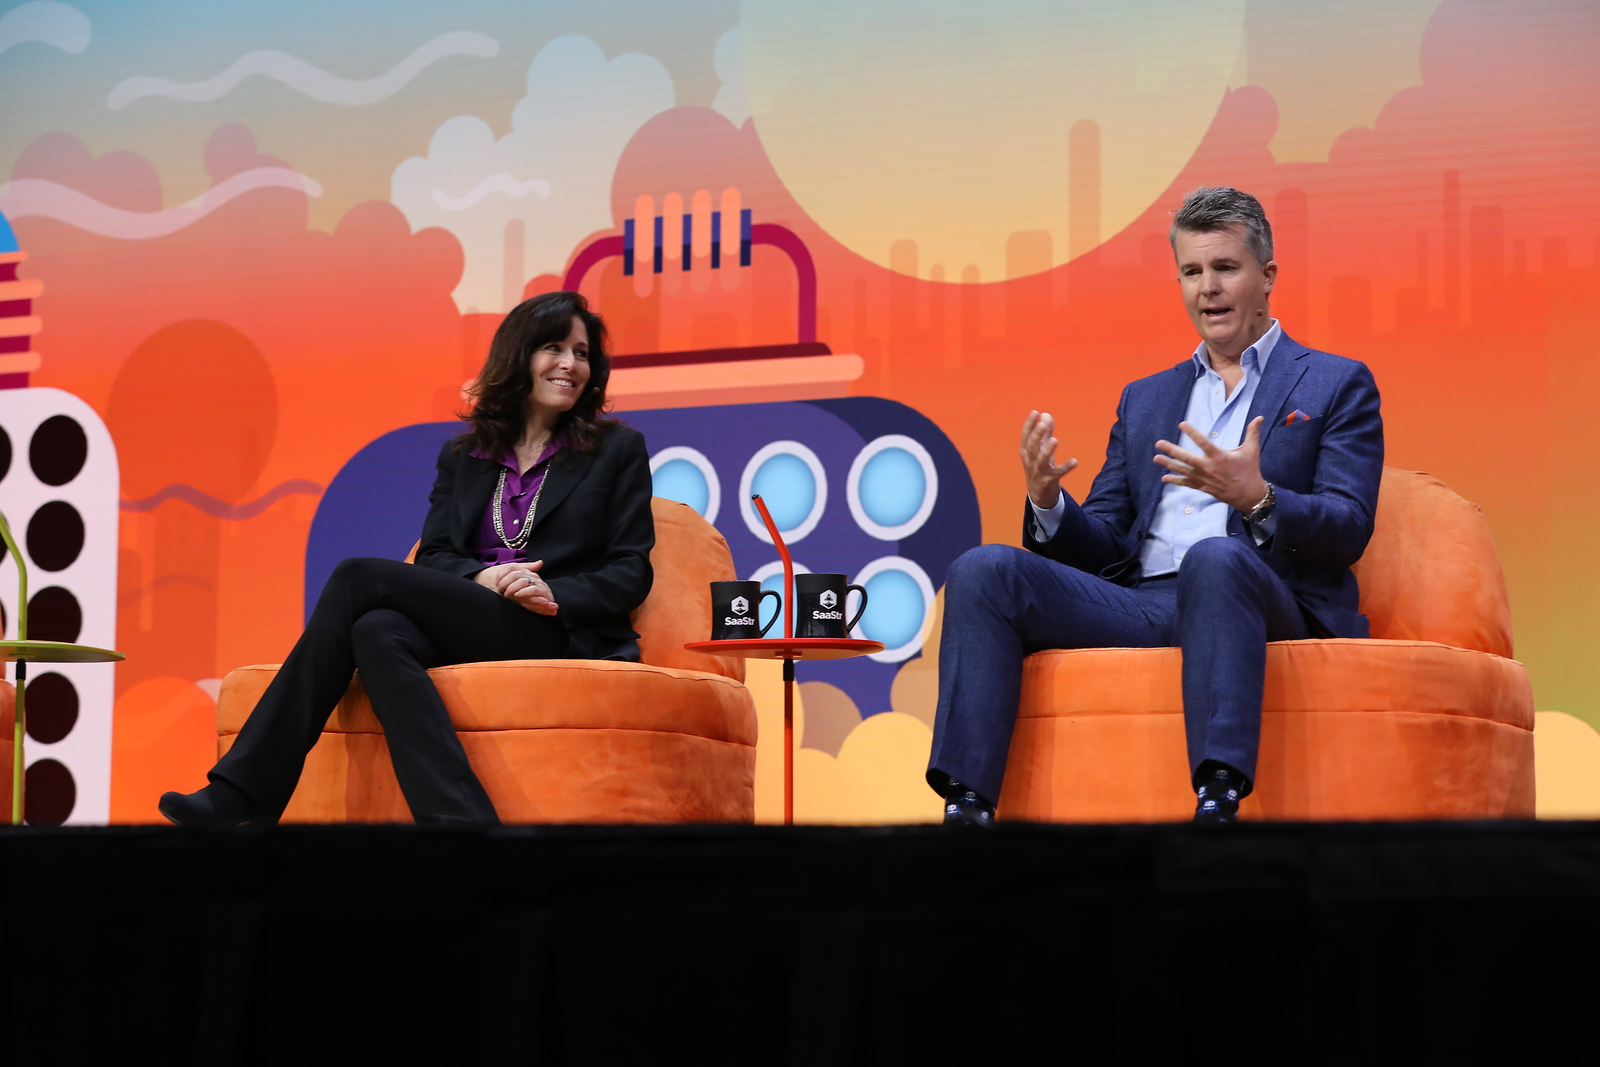 Navigating Your Career in the SaaS World: A Primer Bill Binch MANAGING DIRECTOR, AUSTRALIA/NEW ZEALAND / MARKETO  Lesley Young GLOBAL SVP SALES / BOX Marc Huffman SVP, NETSUITE GLOBAL BUSINESS UNIT / ORACLE Jeff Serlin VP SALES OPERATIONS & STRATEGY / CAMPAIGN MONITOR